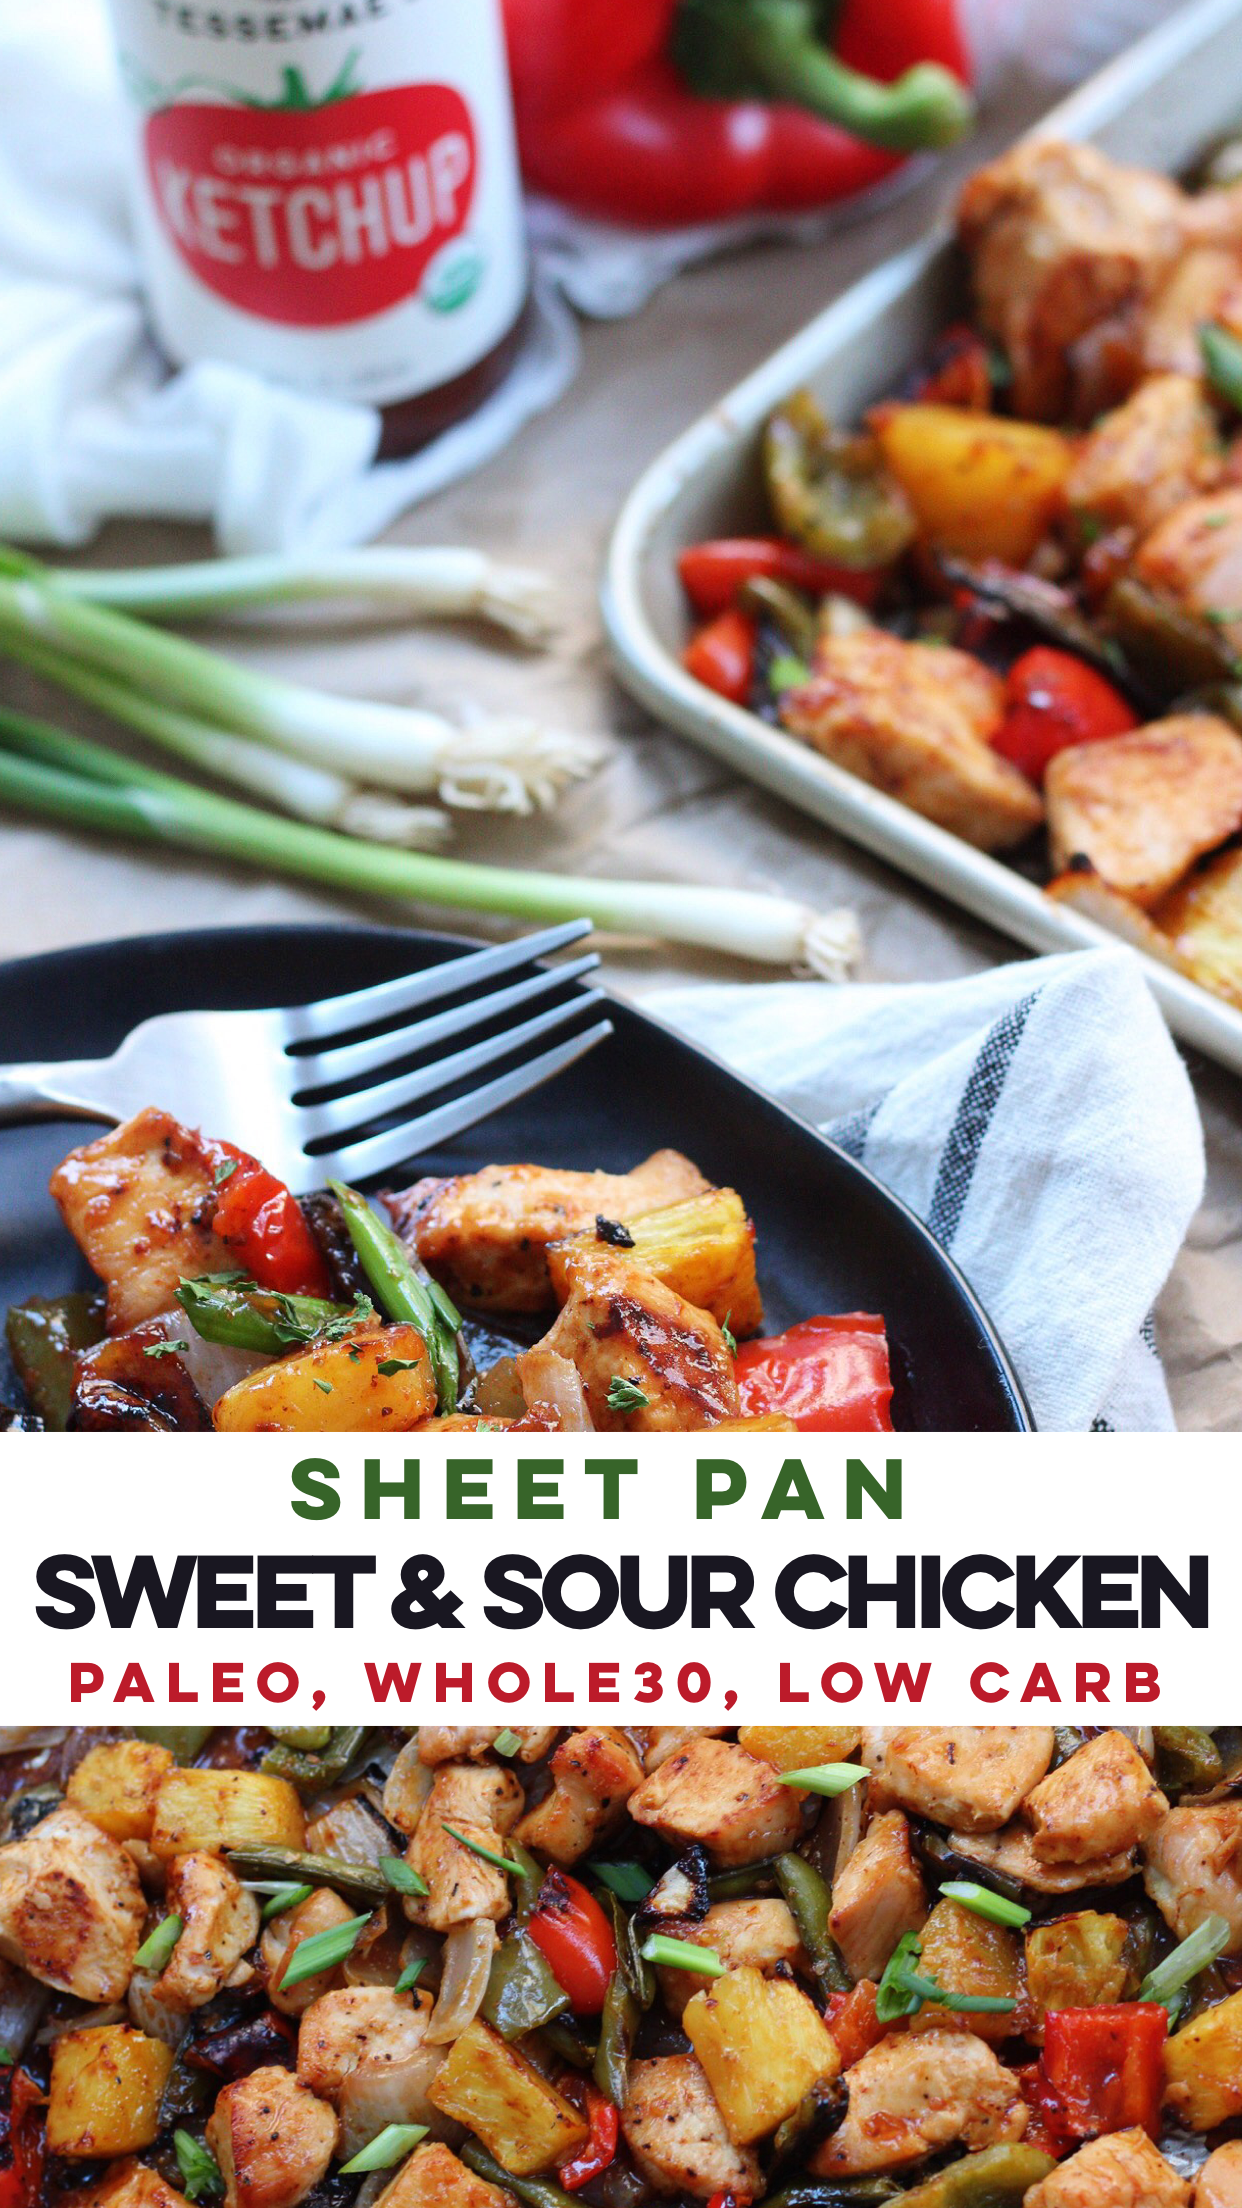 Easy & healthy sheet pan sweet and sour chicken is perfect for a busy week night or Paleo meal prep! #paleo #sweetandsour #whole30 #lowcarb #sheetpan via @paleobailey